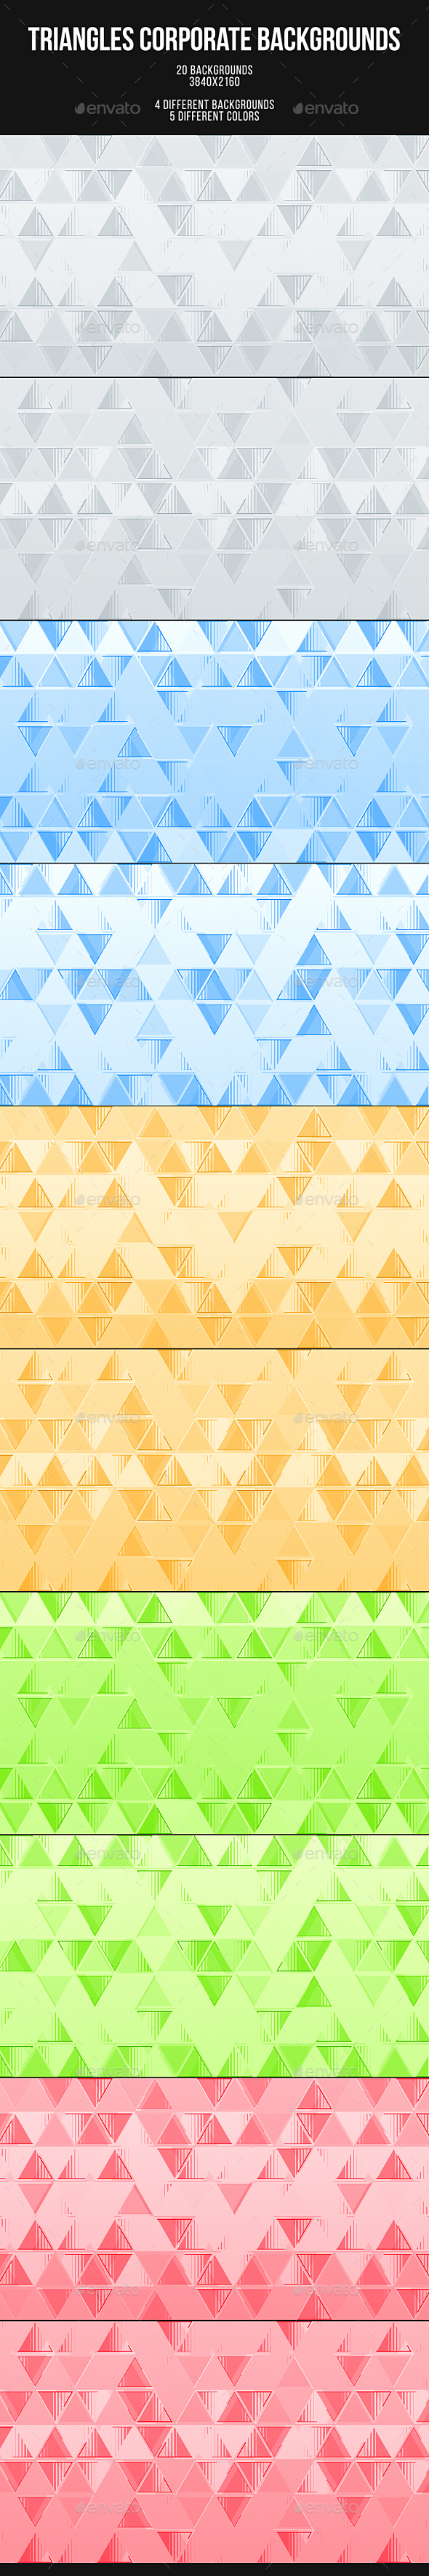 Triangles Corporate Backgrounds - Abstract Backgrounds